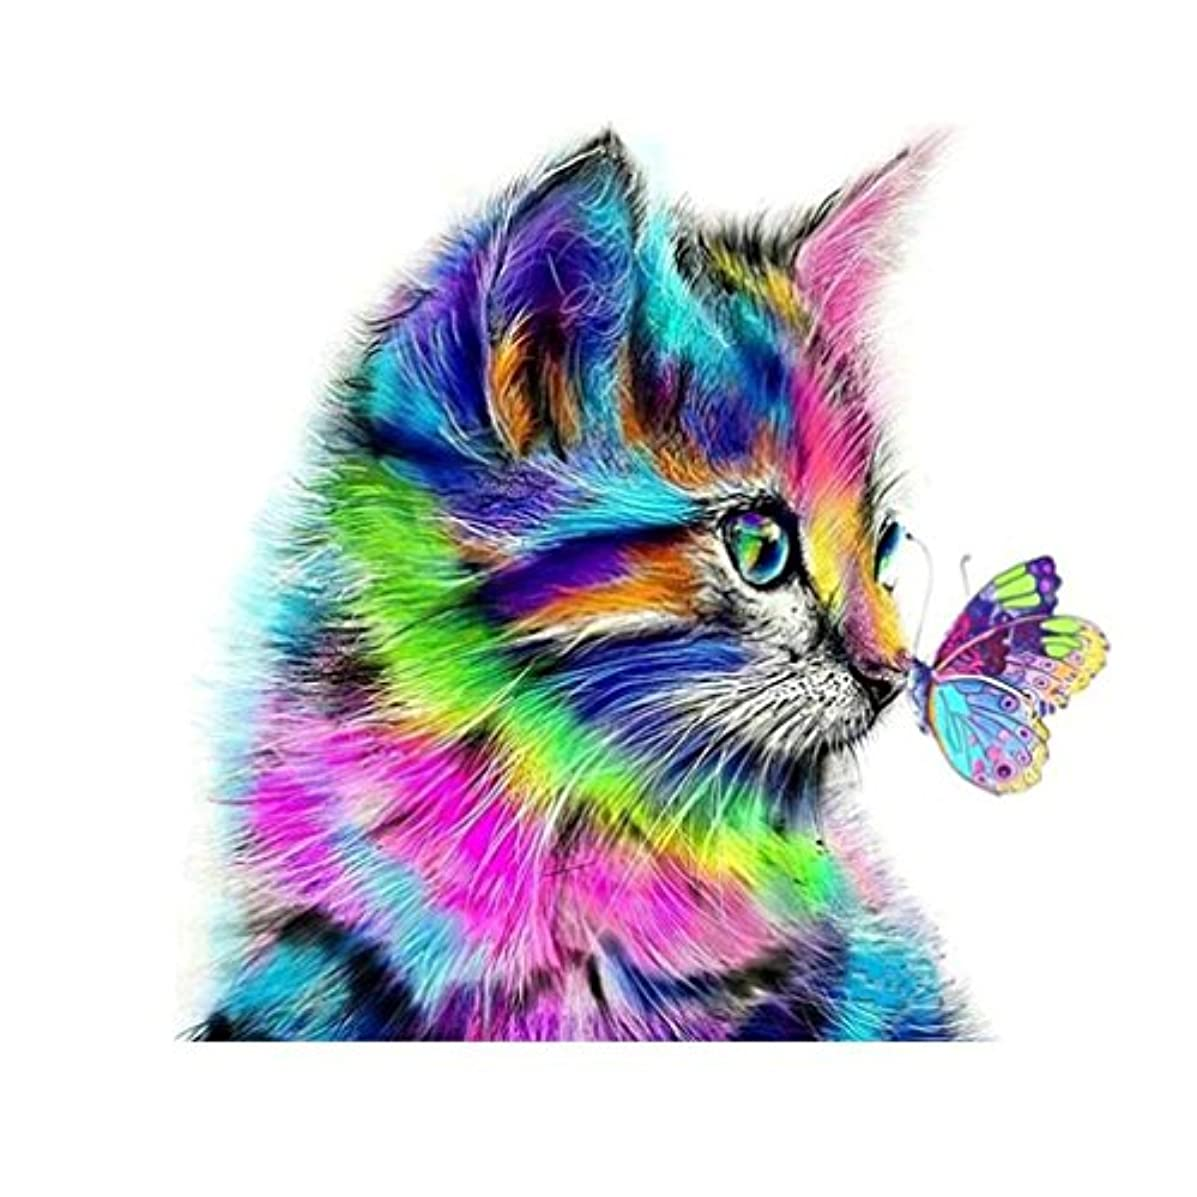 MediaLJia 5D Diamond Painting Cute Cat and Butterfly Arts Craft Sets for Living Room Bedroom Home Decor,4 Sizes (20 x 20 cm)